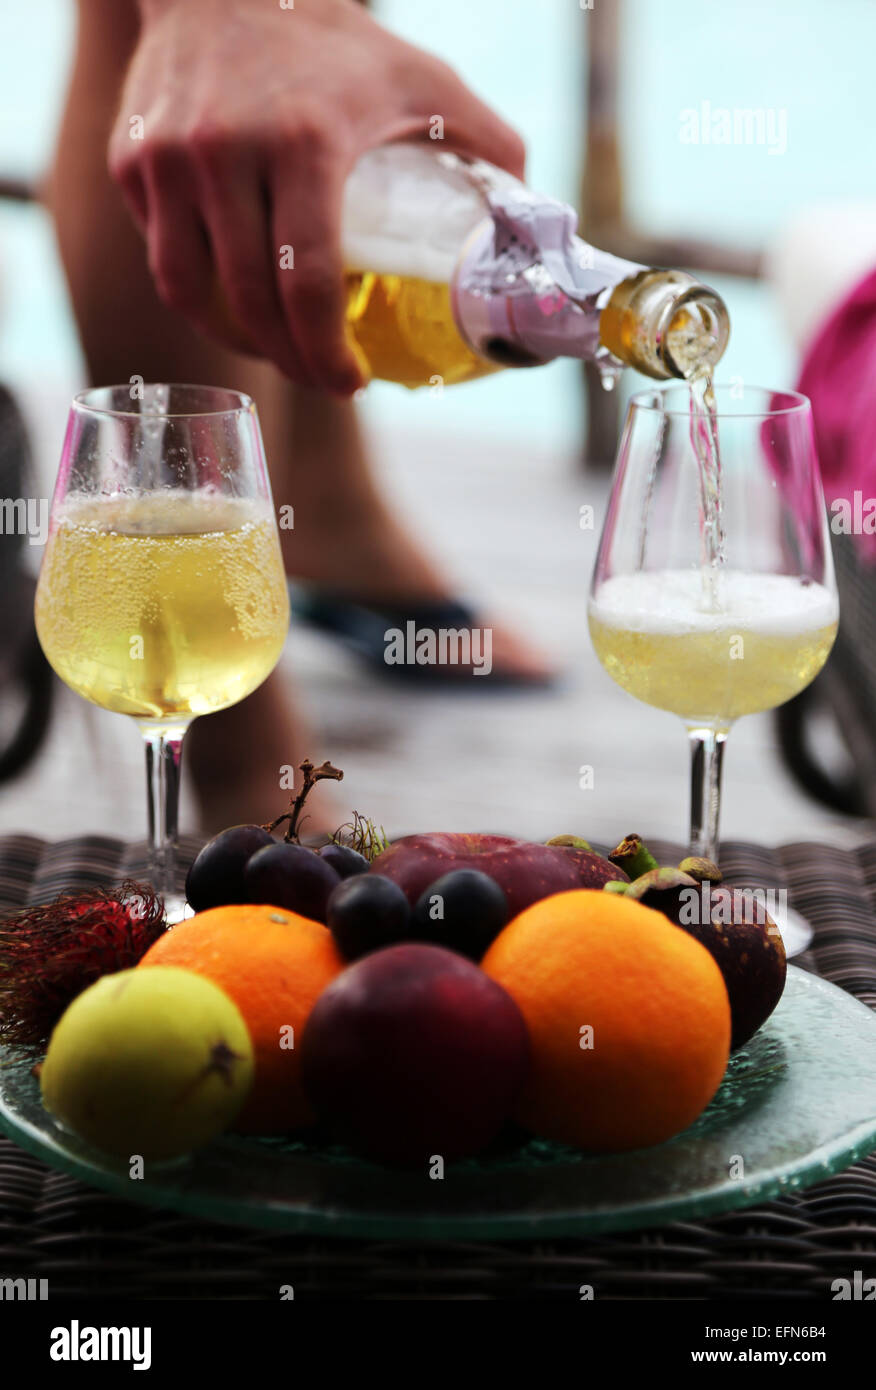 A man's hand pours champagne into two glasses. A plate of exotic fruits is in the front. - Stock Image